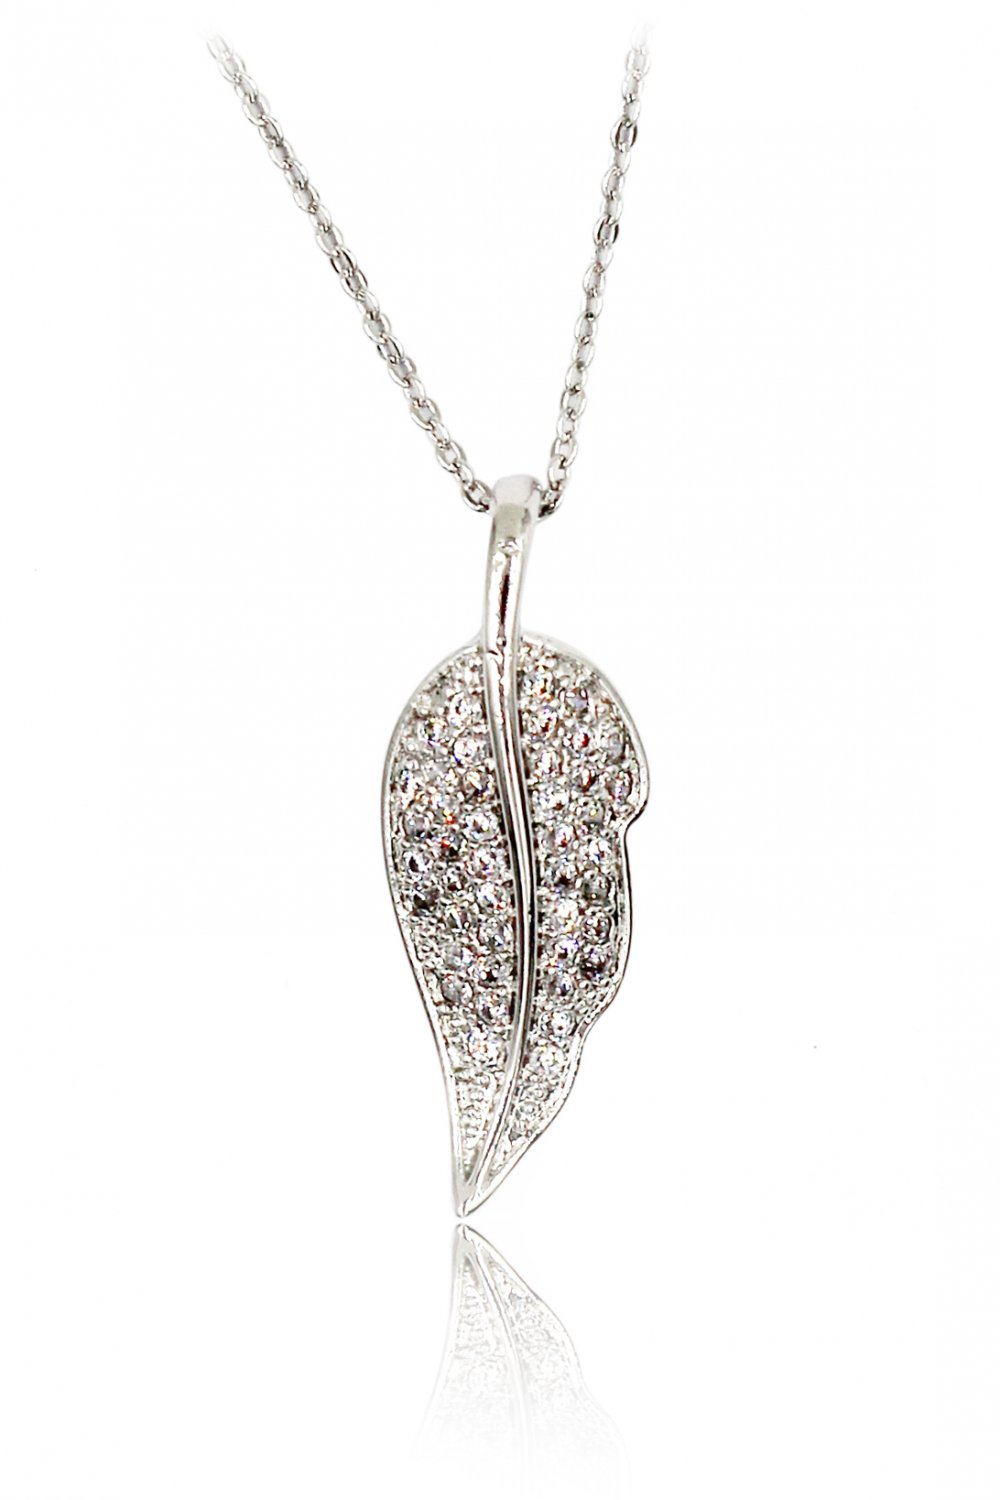 Delicate leaves crystal Sterling Silver Chain silver necklace